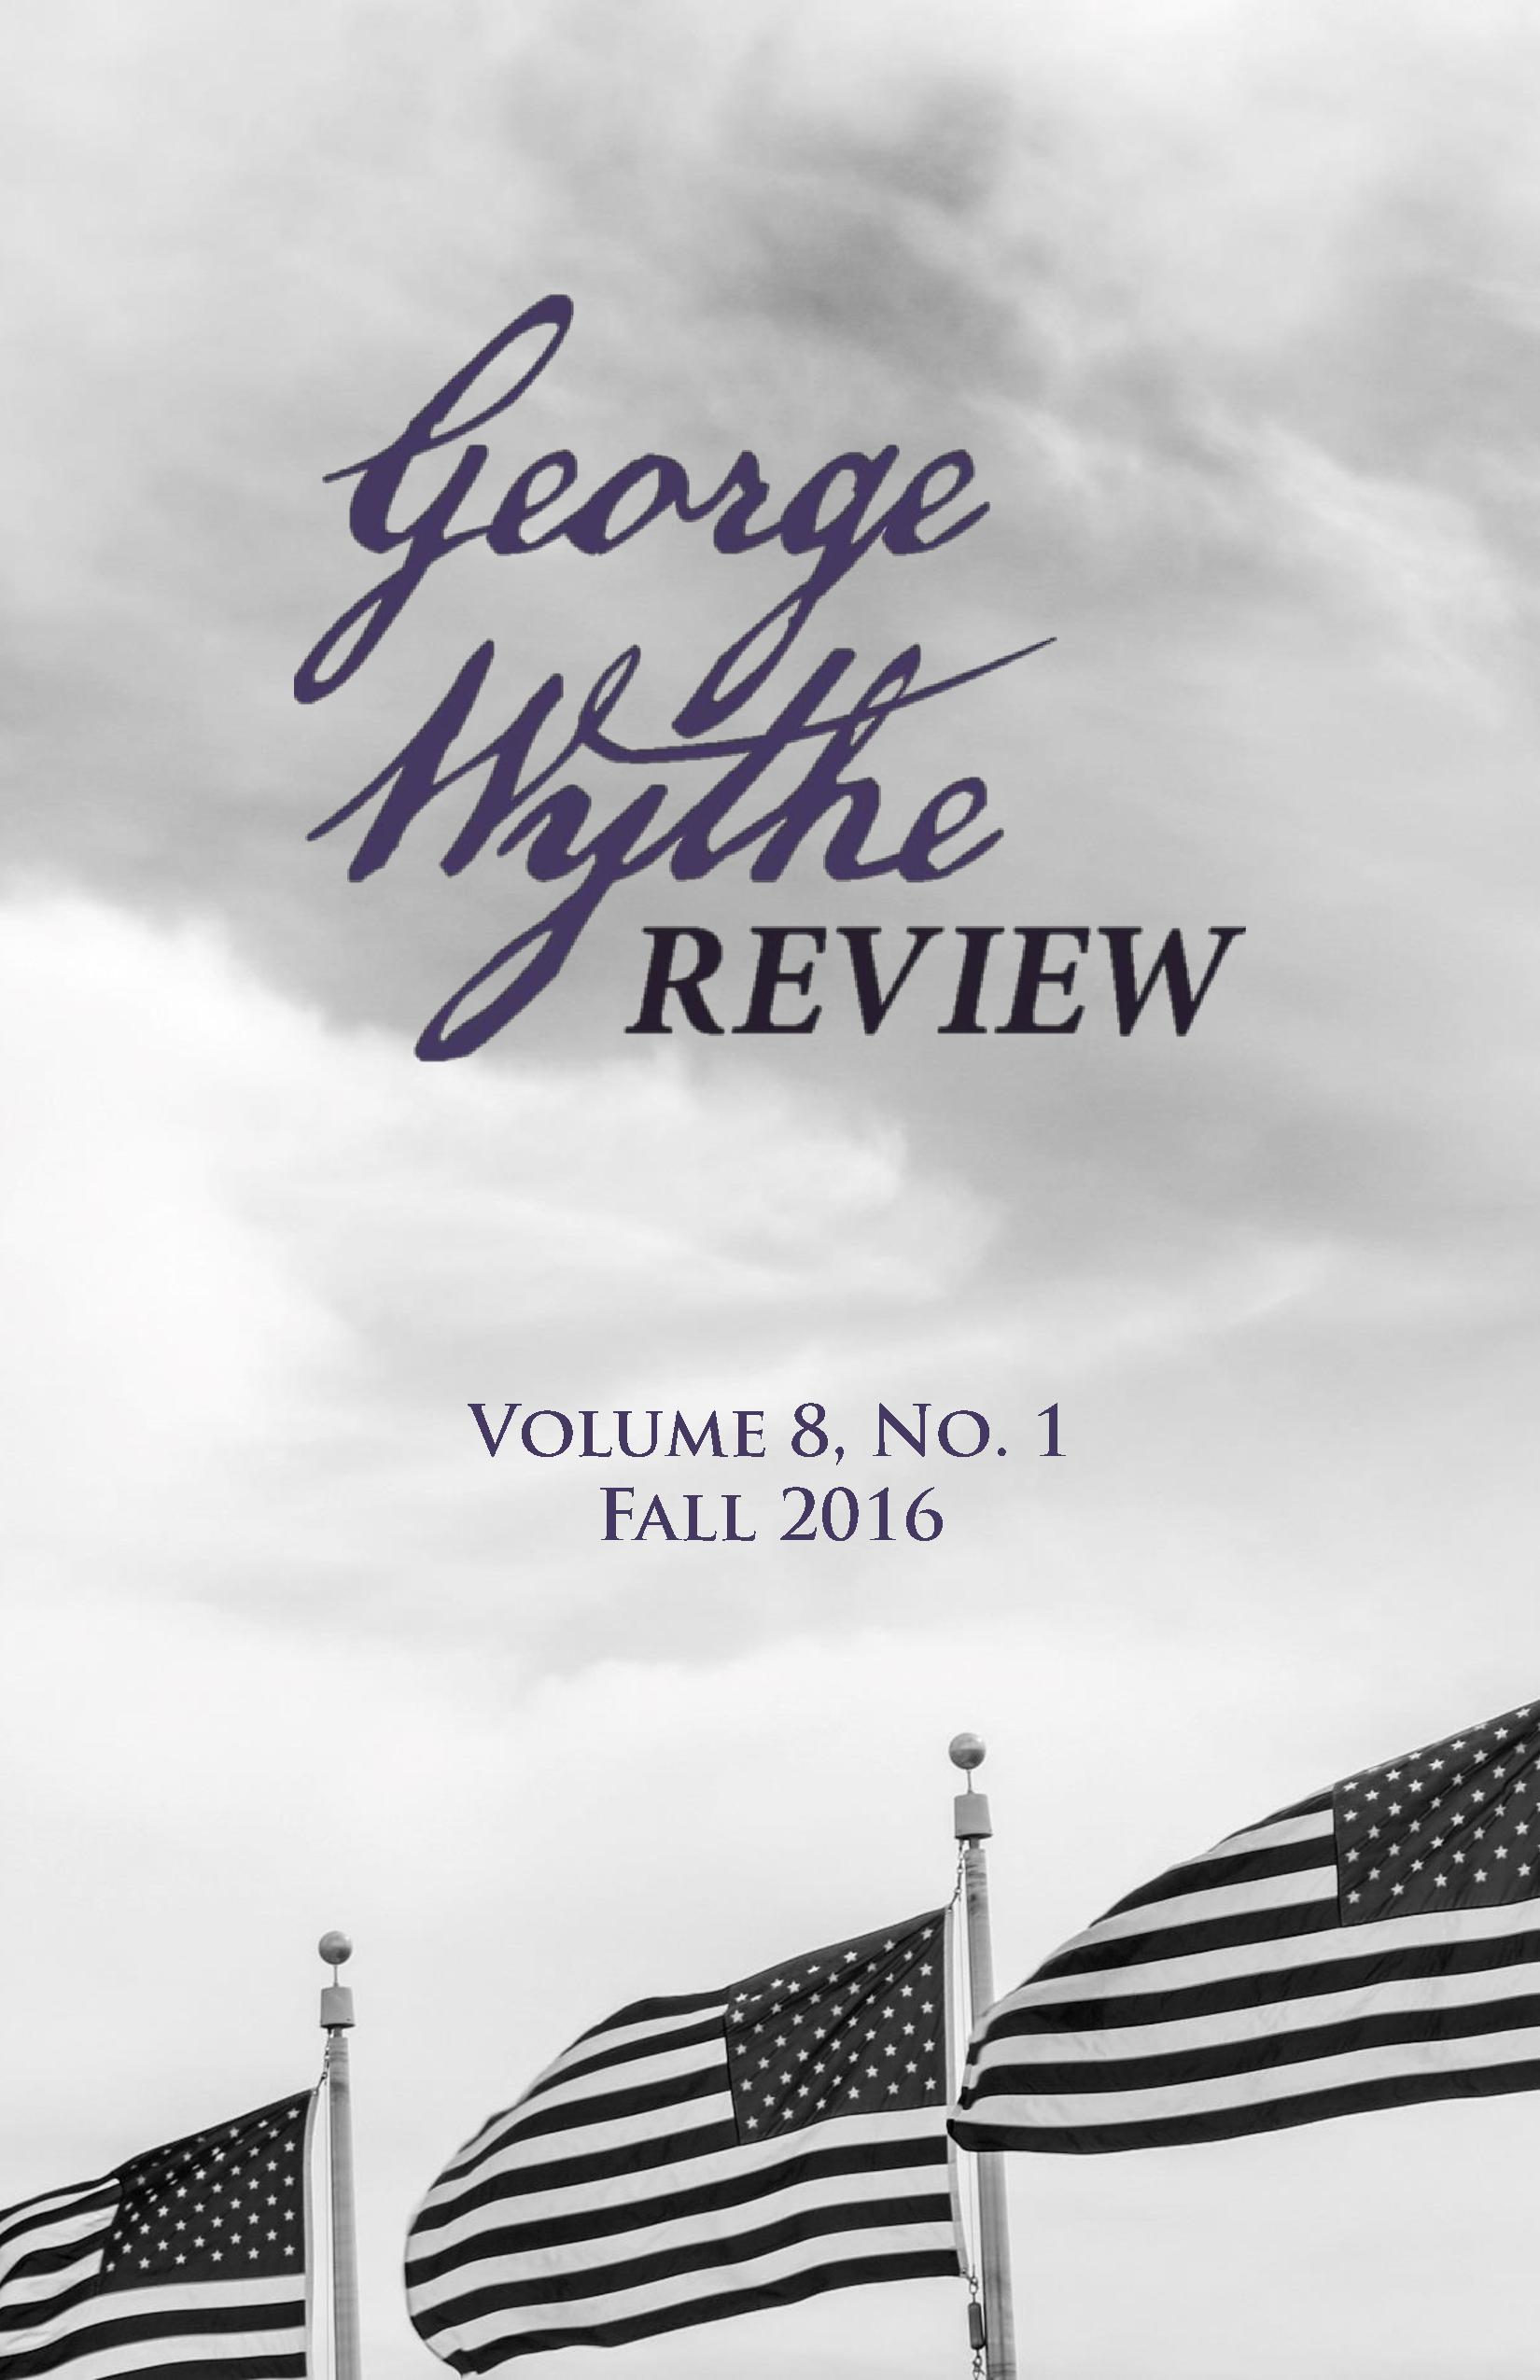 George_Wythe_Review-1.jpg